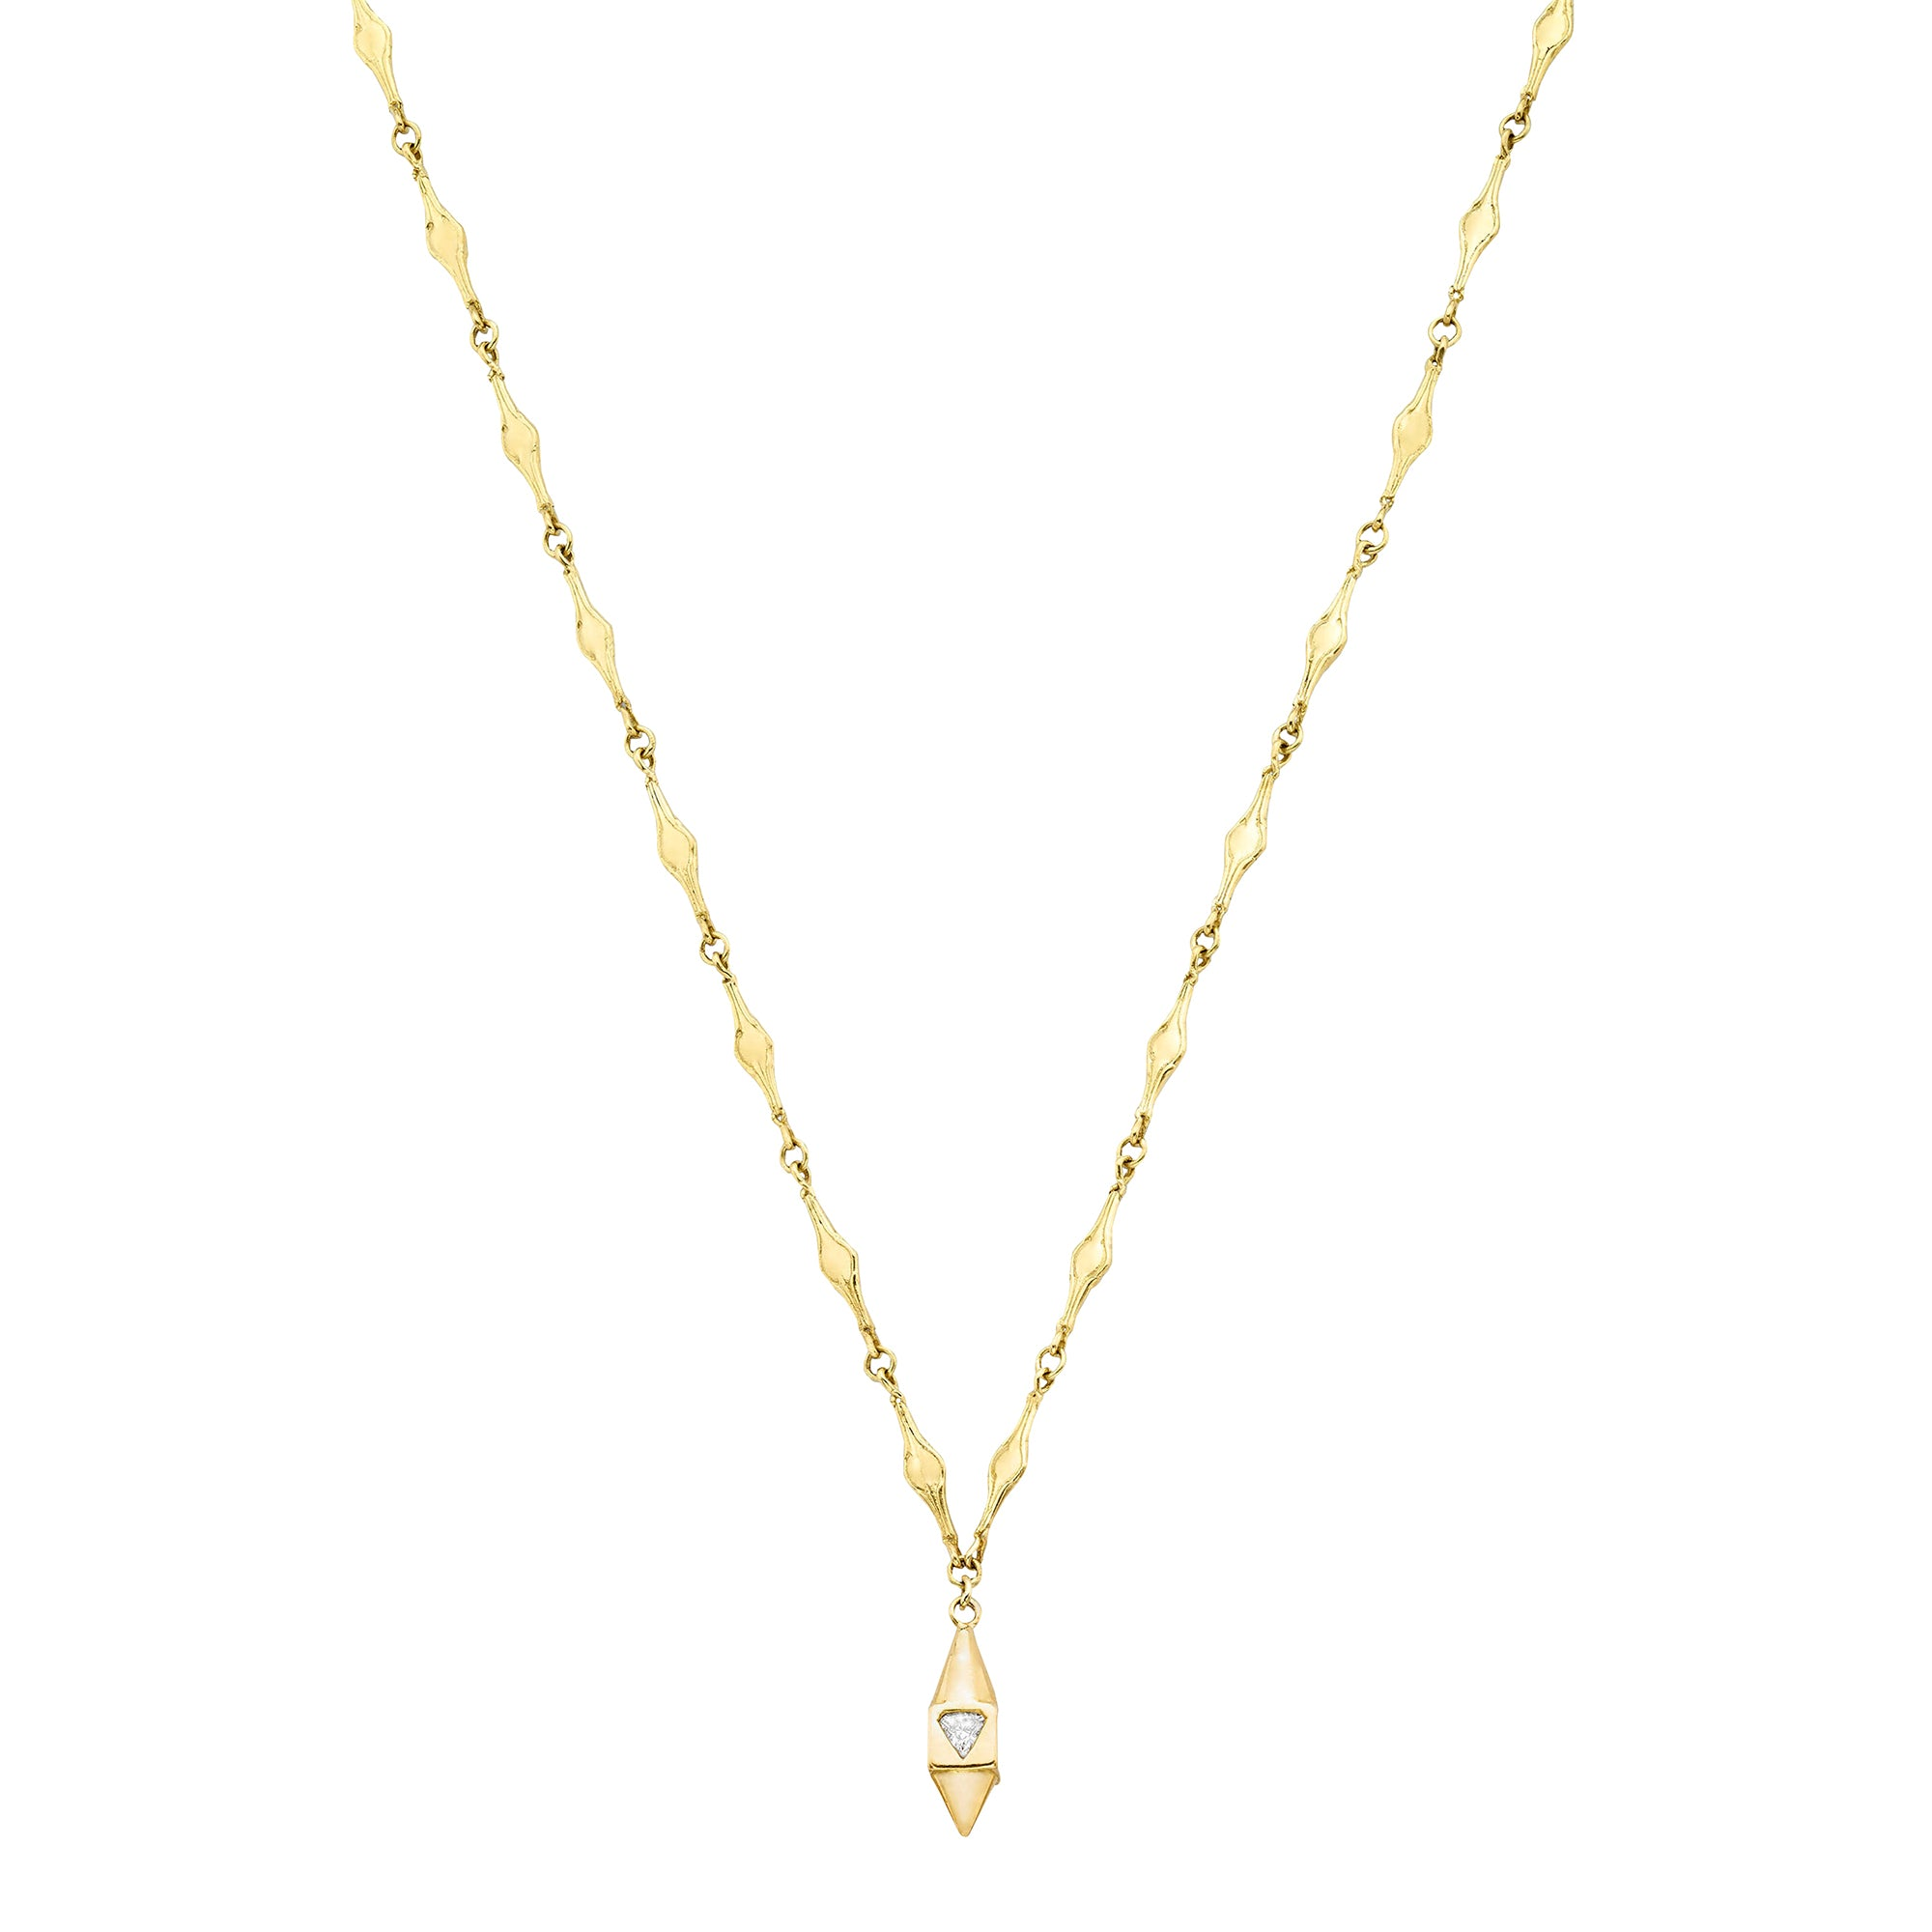 Libertine Square Pendulum Necklace  - Ilene Joy - Necklaces | Broken English Jewelry